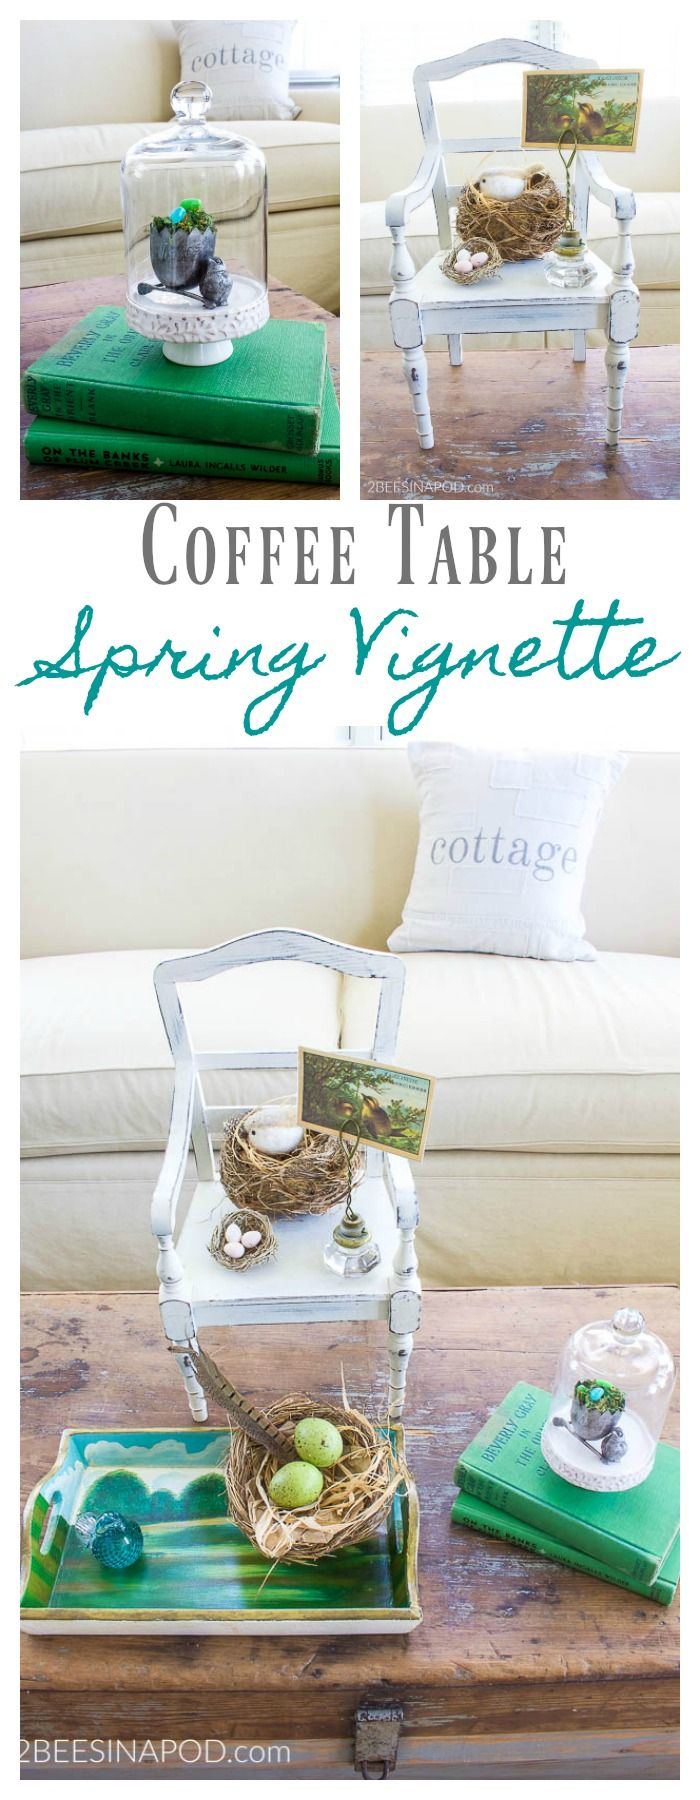 Spring Coffee Table Vignette With Nests is part of Upcycled Crafts Awesome Coffee Tables - Happy first day of Spring! Today, we are so excited to share our spring coffee table vignette  We are celebrating the arrival of the season with a Spring Festival Blog Hop, hosted by our sweet friend Kendra of Joy in Our Home  All week long 23 bloggers will be sharing all things spring in home     Read More about Spring Coffee Table Vignette With Nests